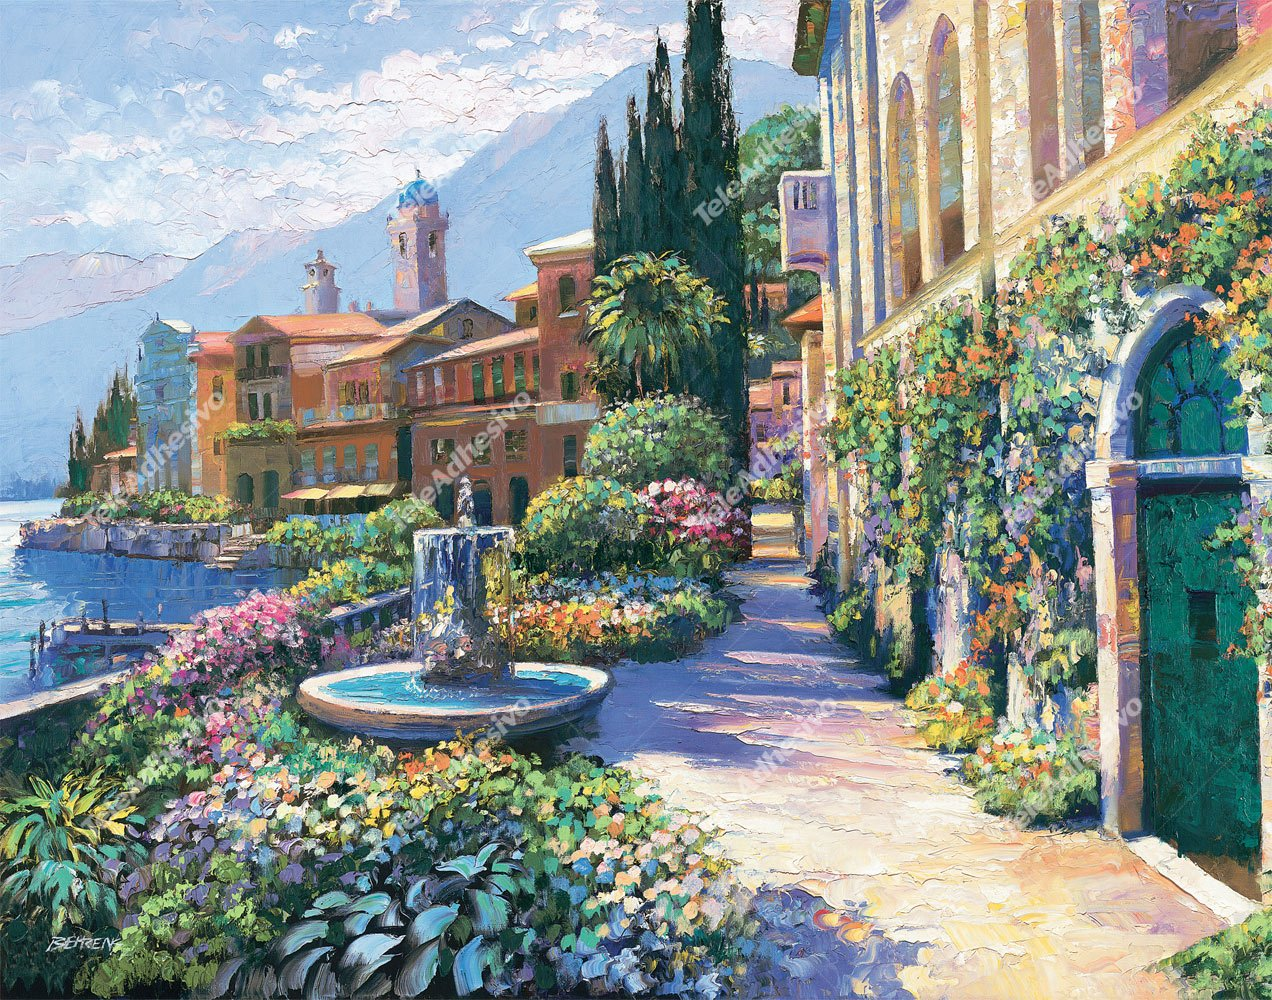 Fototapeten: Splendor of Italy (Howard Behrens)